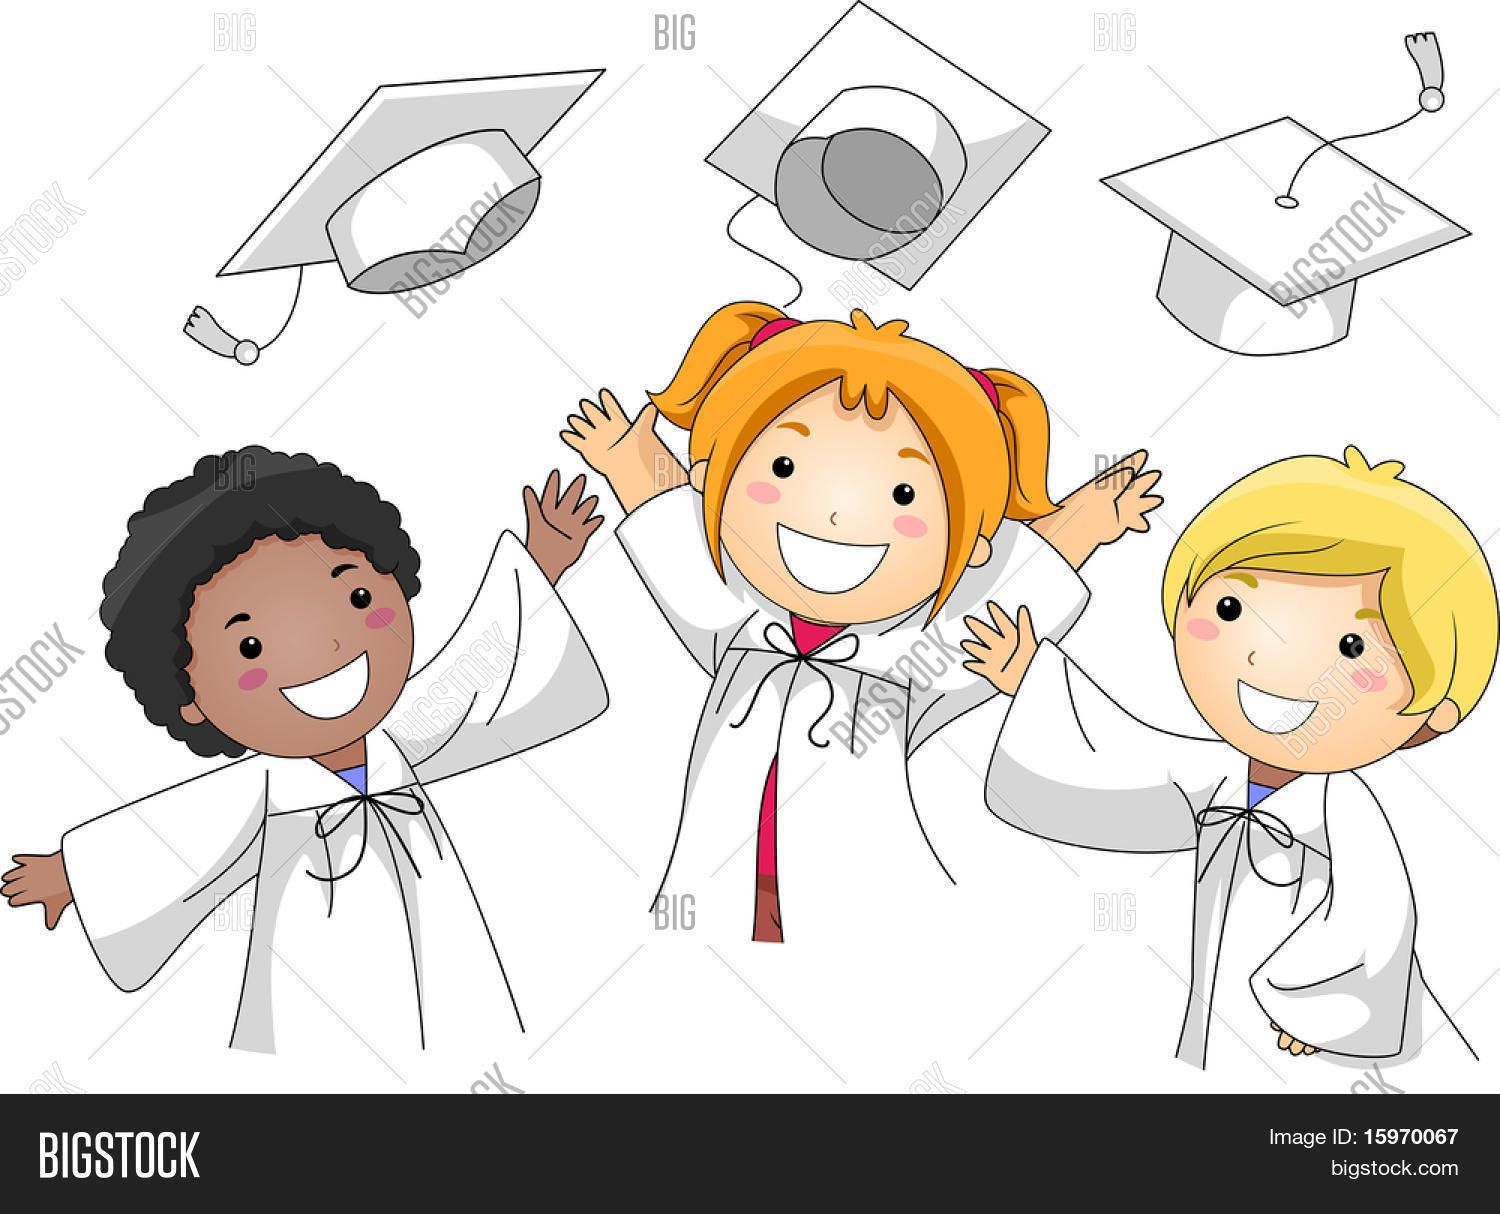 Tossing Their Graduation Caps In The Air Stock Vector Illustration